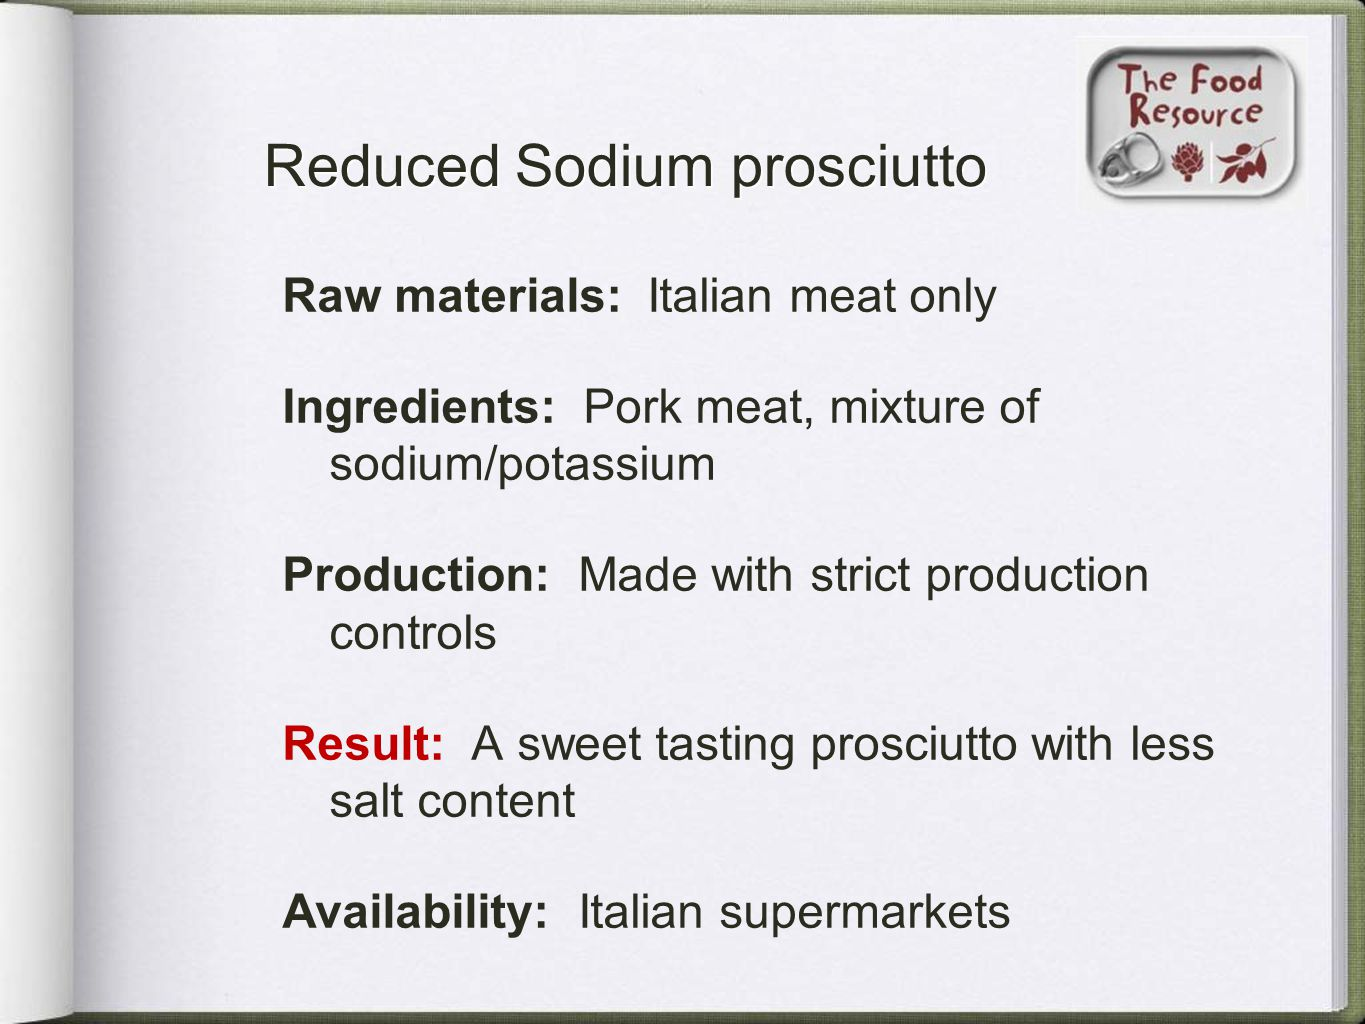 Reduced Sodium prosciutto Raw materials: Italian meat only Ingredients: Pork meat, mixture of sodium/potassium Production: Made with strict production